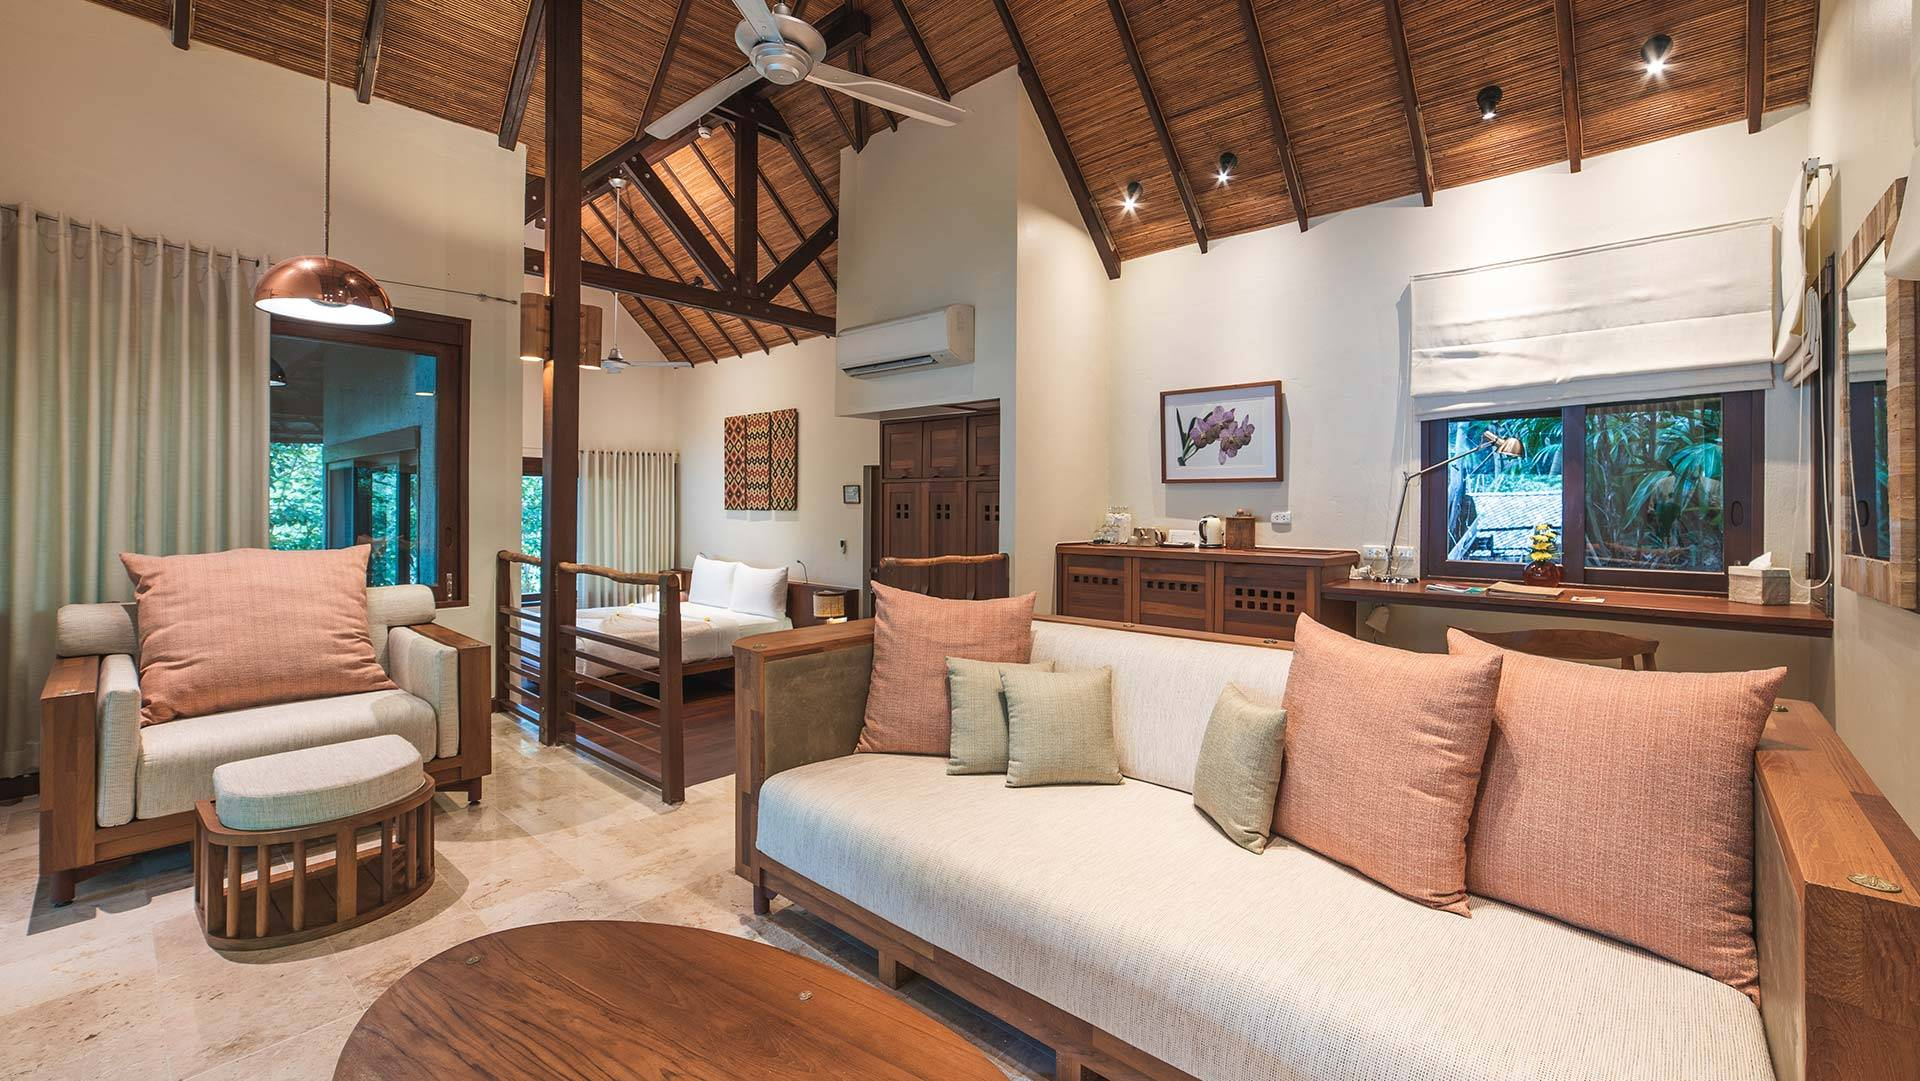 Delux Accommodations at Beach Spa Resort in Thailand